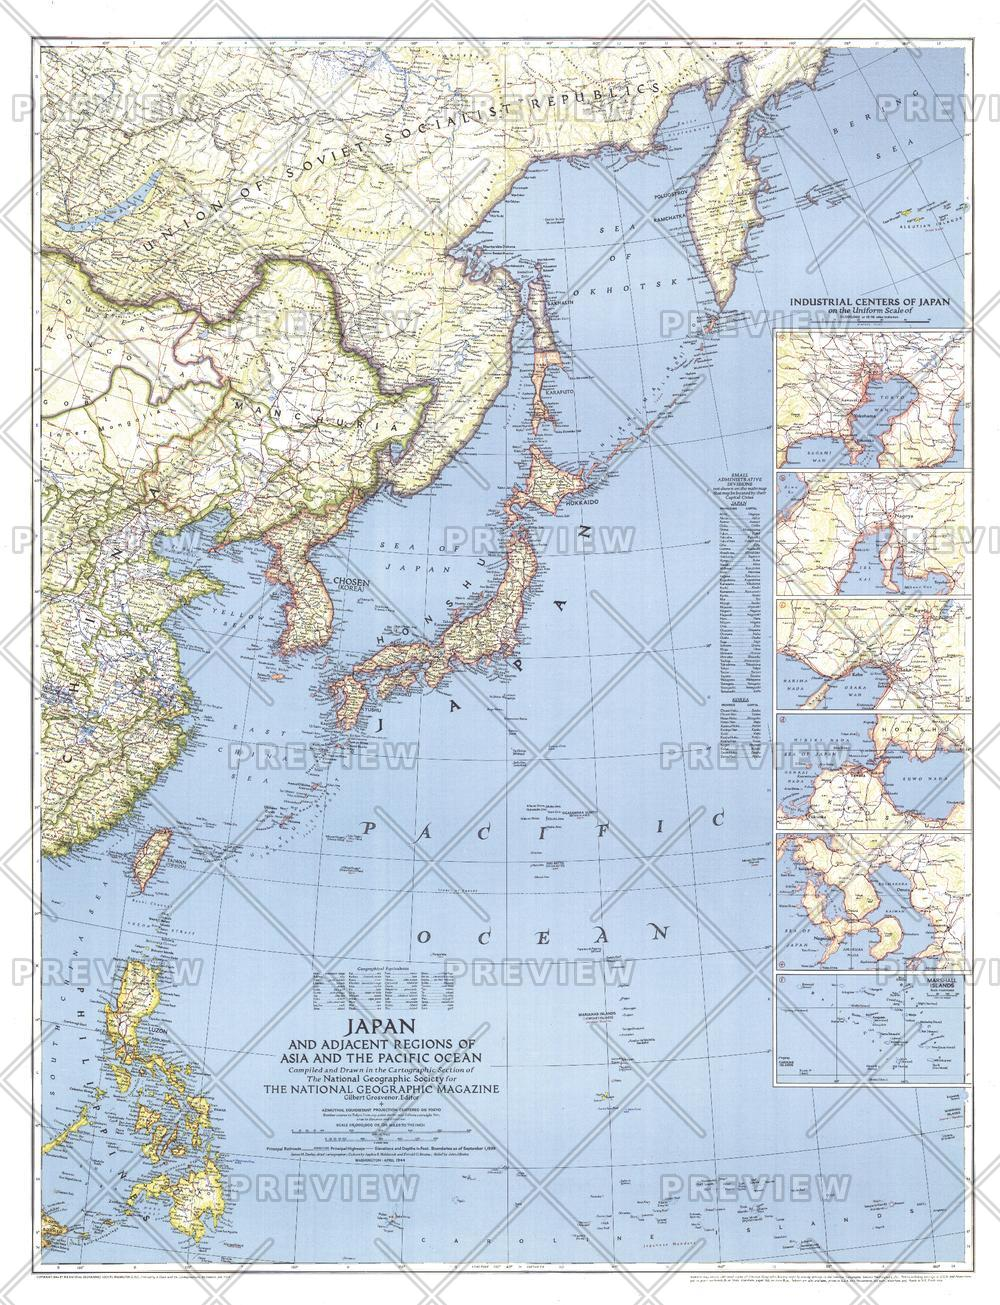 Japan and Adjacent Regions of Asia and the Pacific Ocean  -  Published 1944